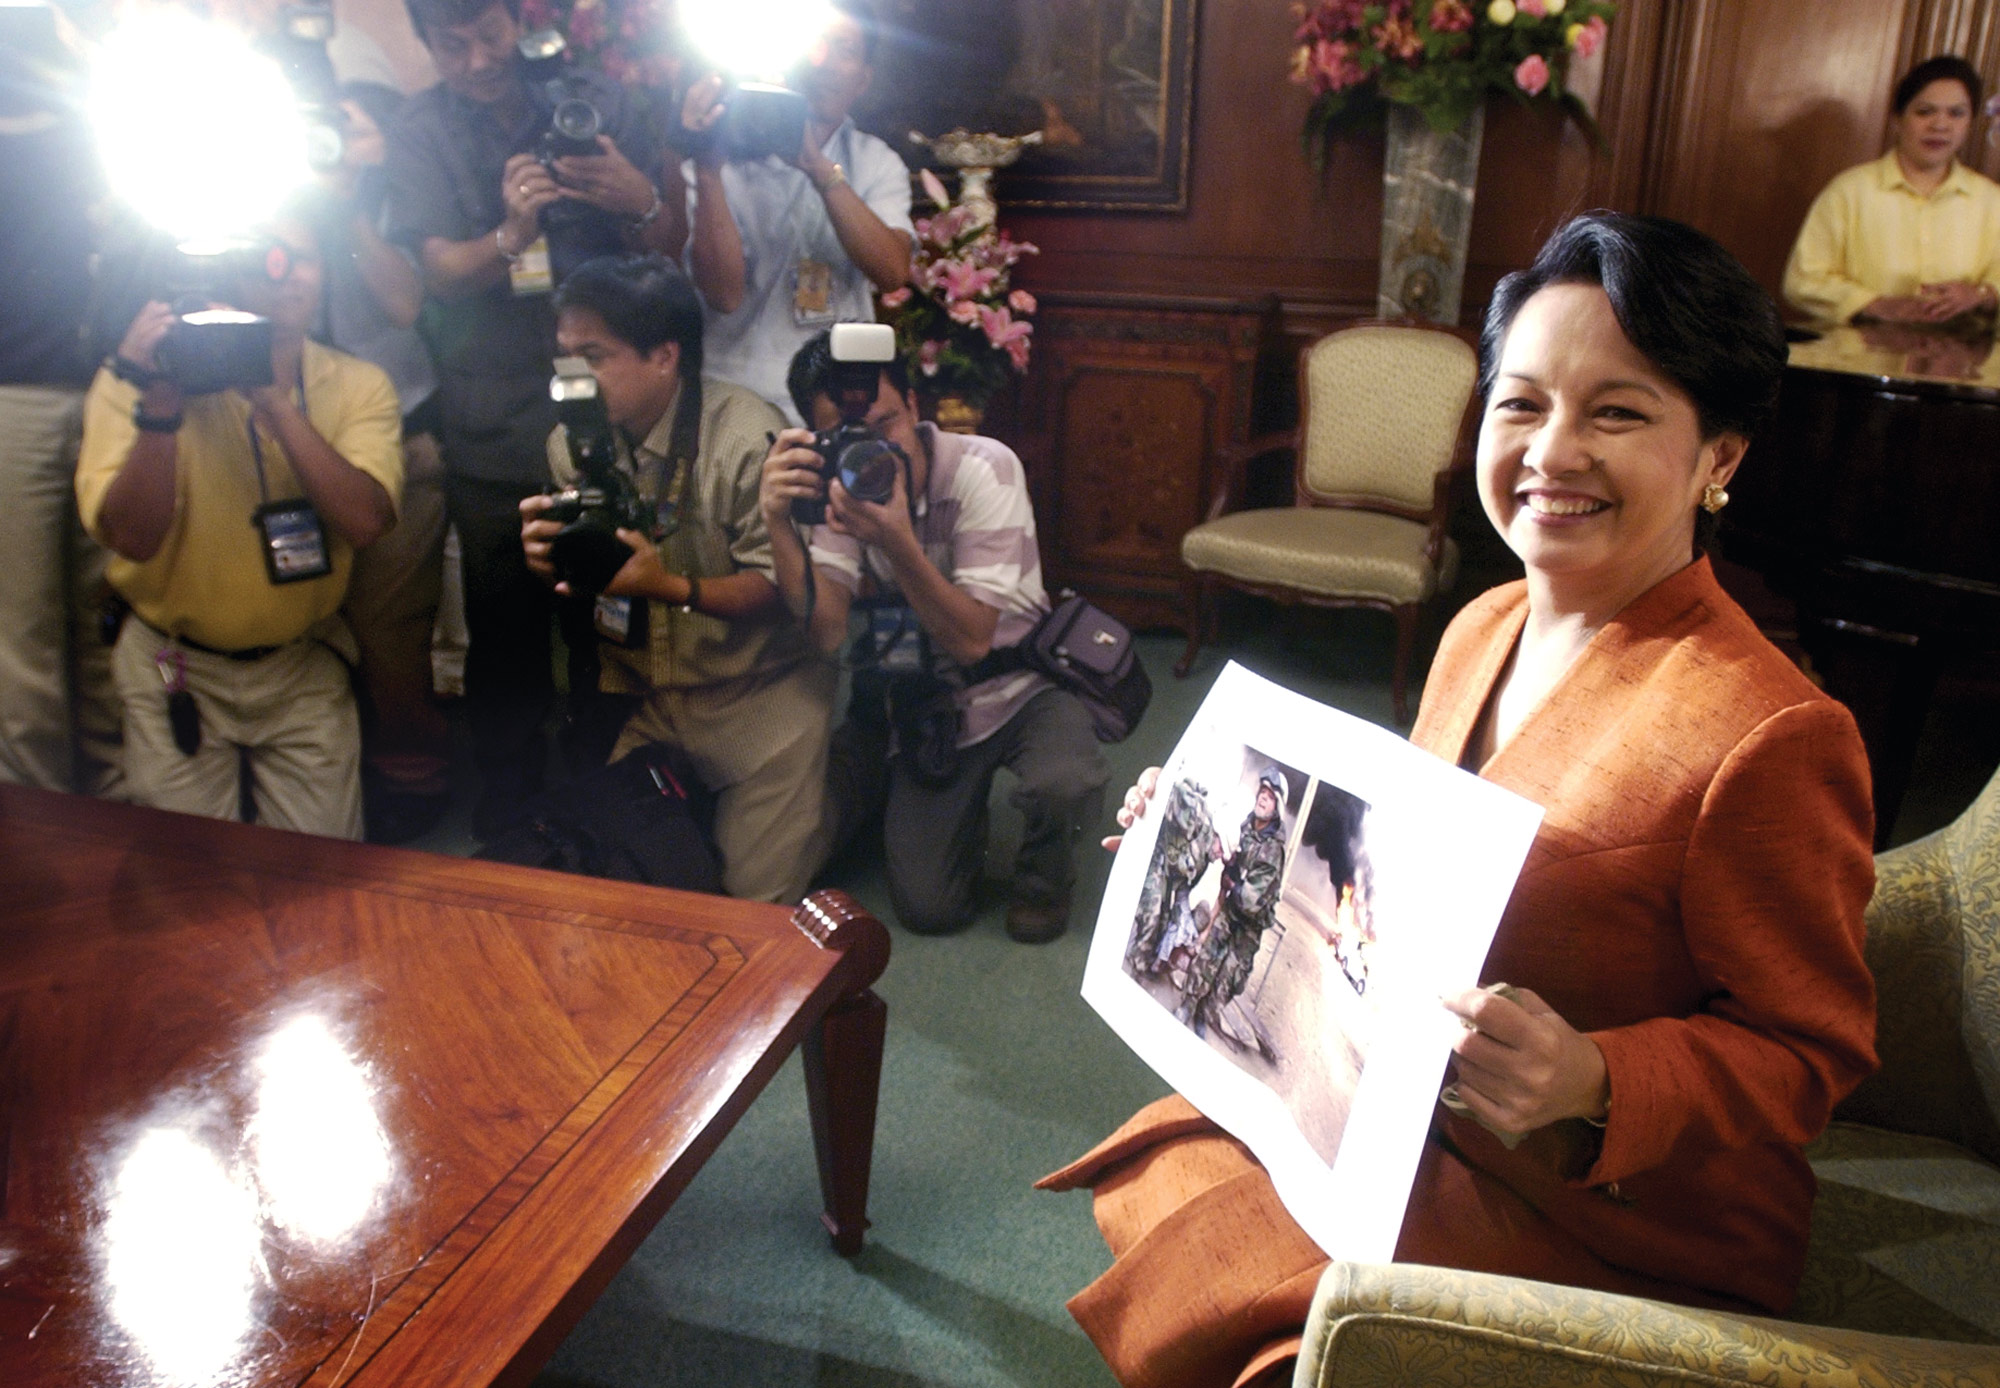 Philippine President Gloria Macapagal Arroyo holds up the 2004 Pulitzer Prize winning photograph by Cheryl Diaz Meyer, during Diaz Meyer's visit to the Malacañang Palace in Manila Philippines, on June 16, 2004. Diaz Meyer is the fourth Filipino to win the Pulitzer Prize.